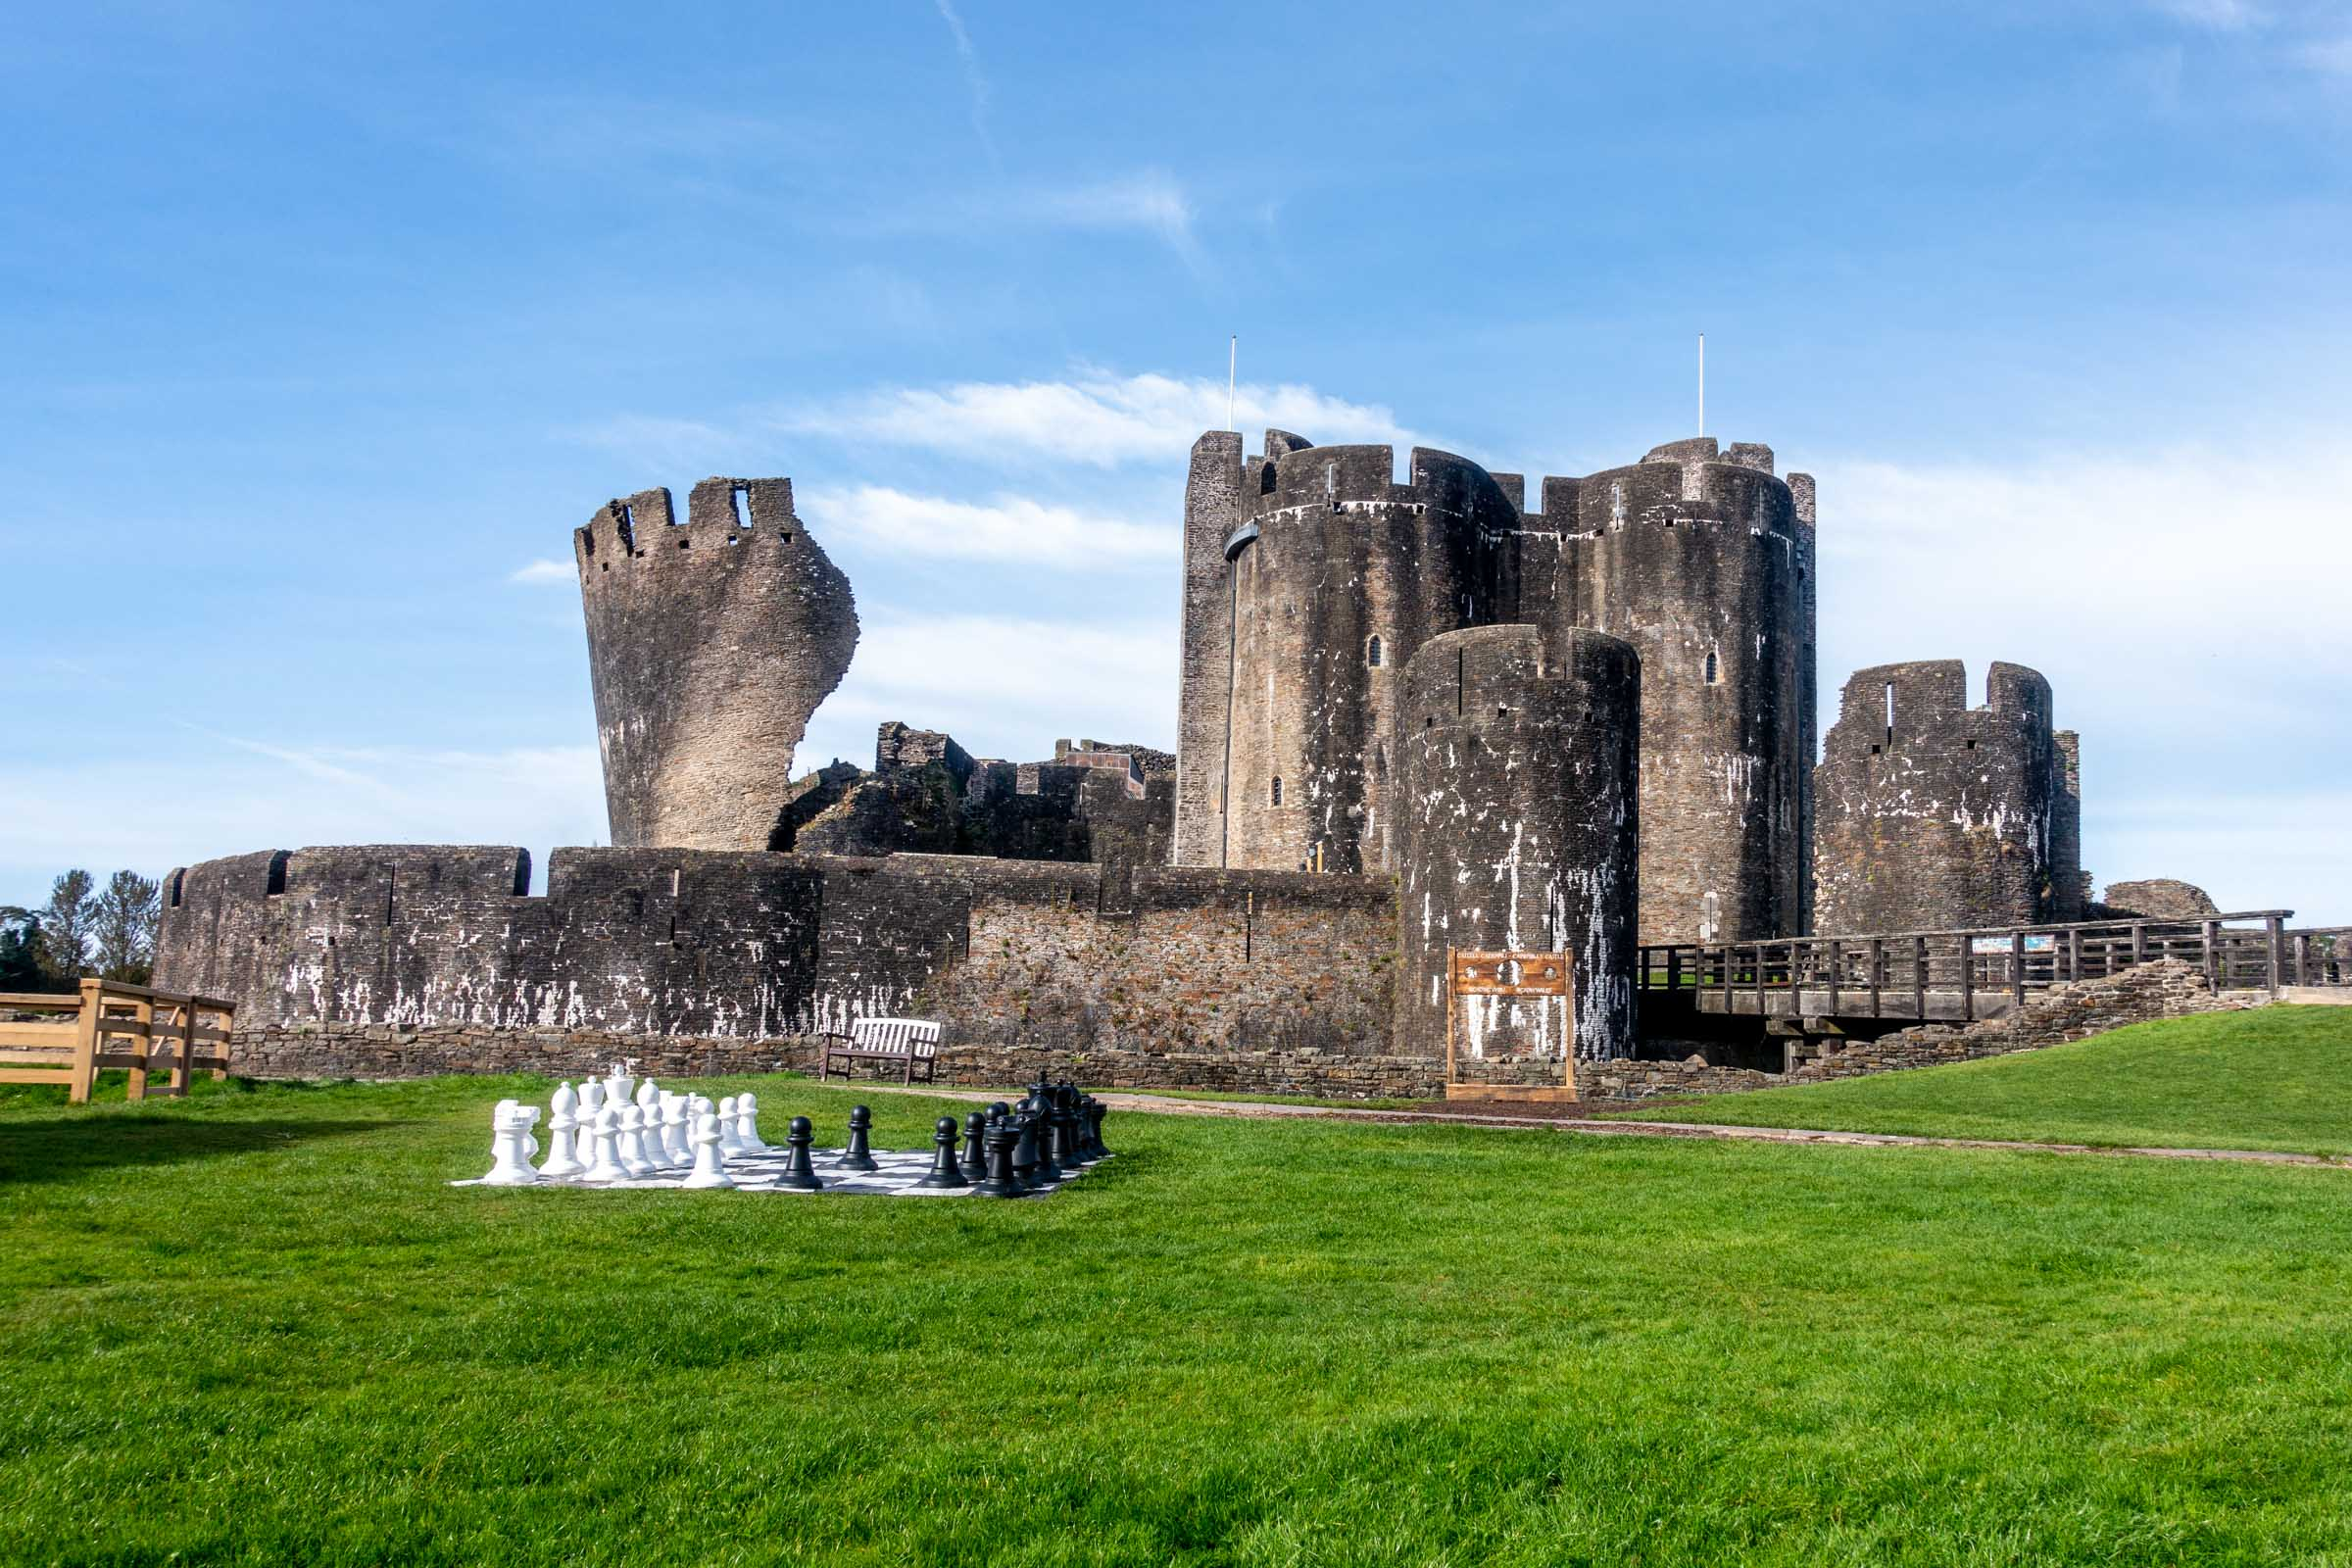 Stone towers of Caerphilly Castle